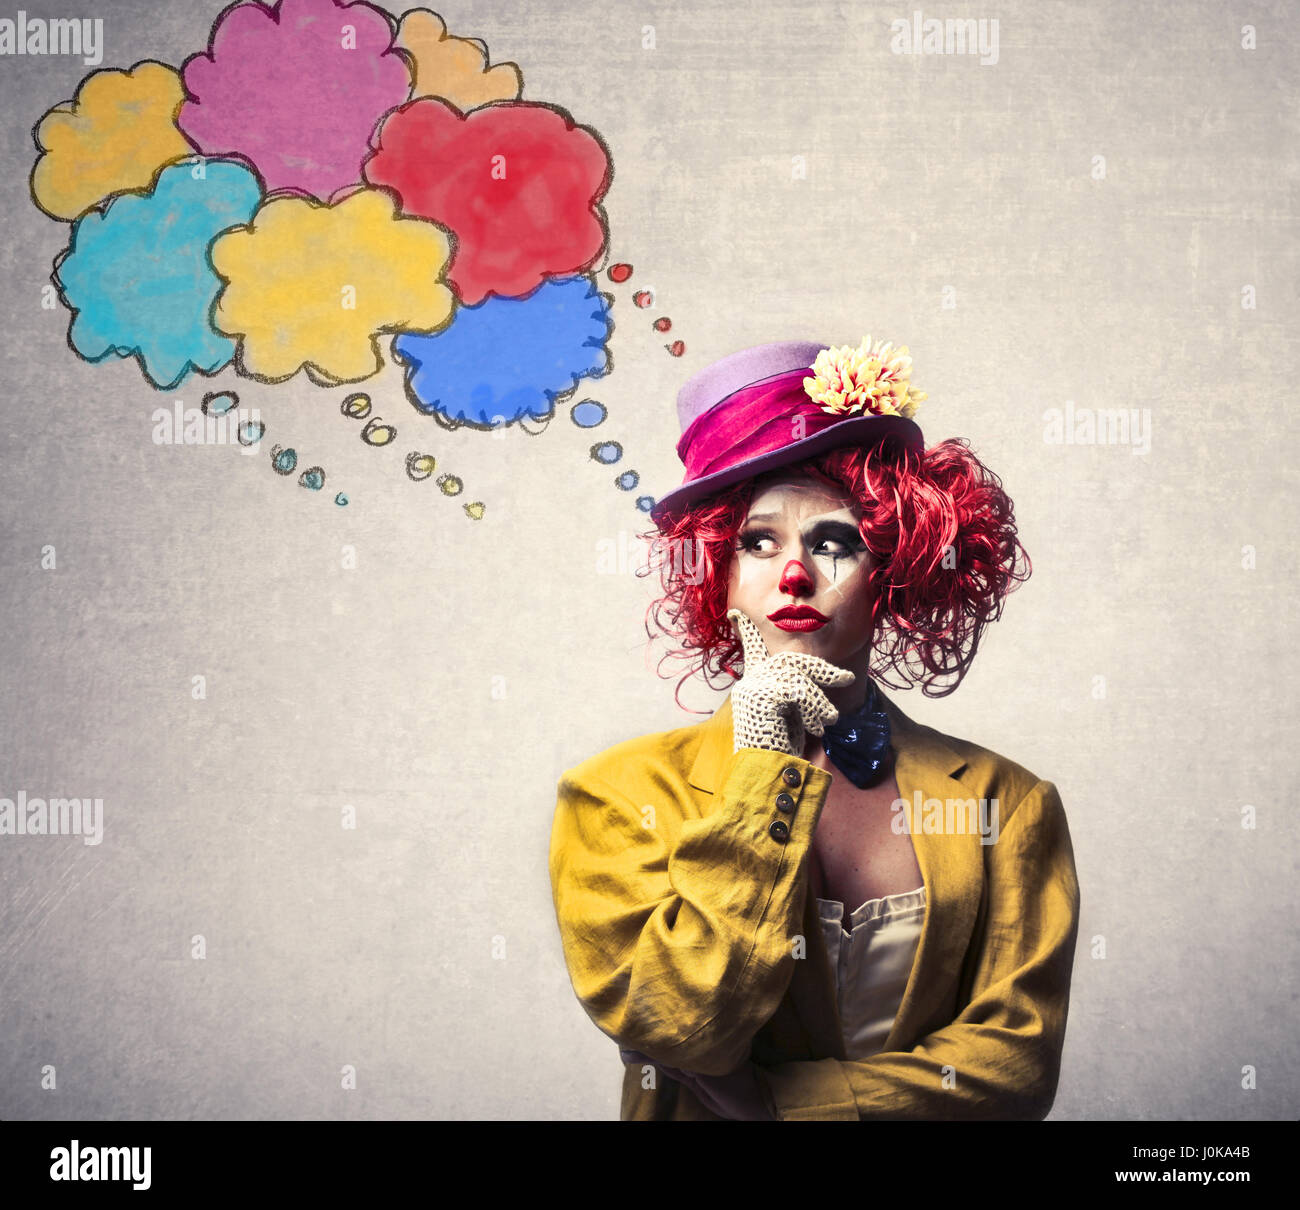 Clown woman thinking Photo Stock